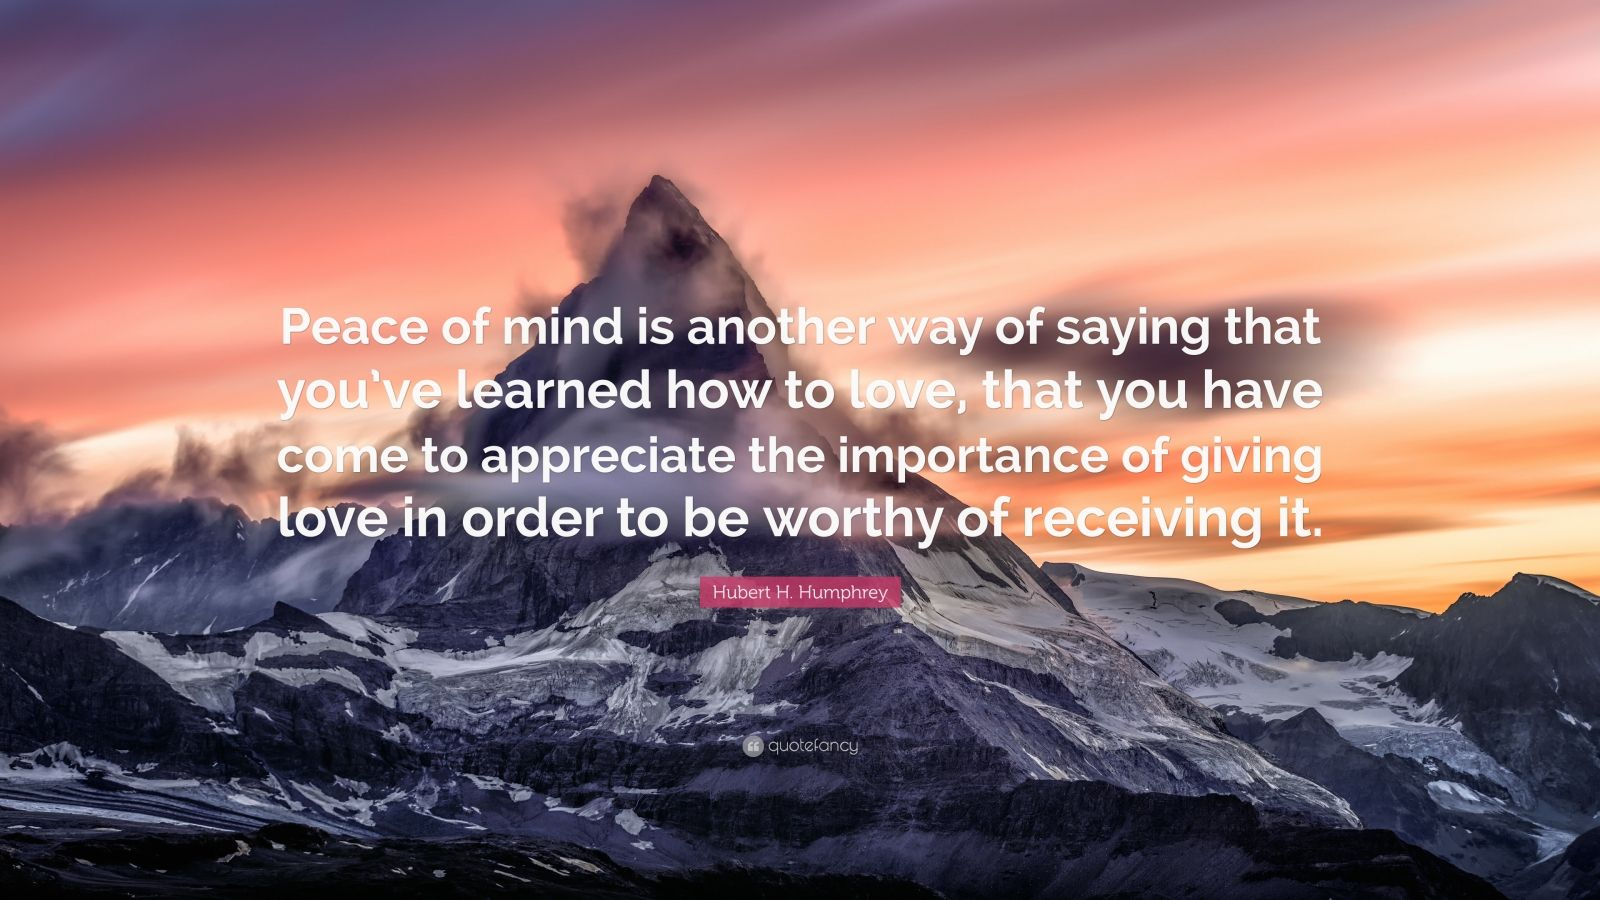 """Hubert H. Humphrey Quote: """"Peace of mind is another way of saying that you've learned how to love, that you have come to appreciate the importance of giving love in order to be worthy of receiving it."""""""